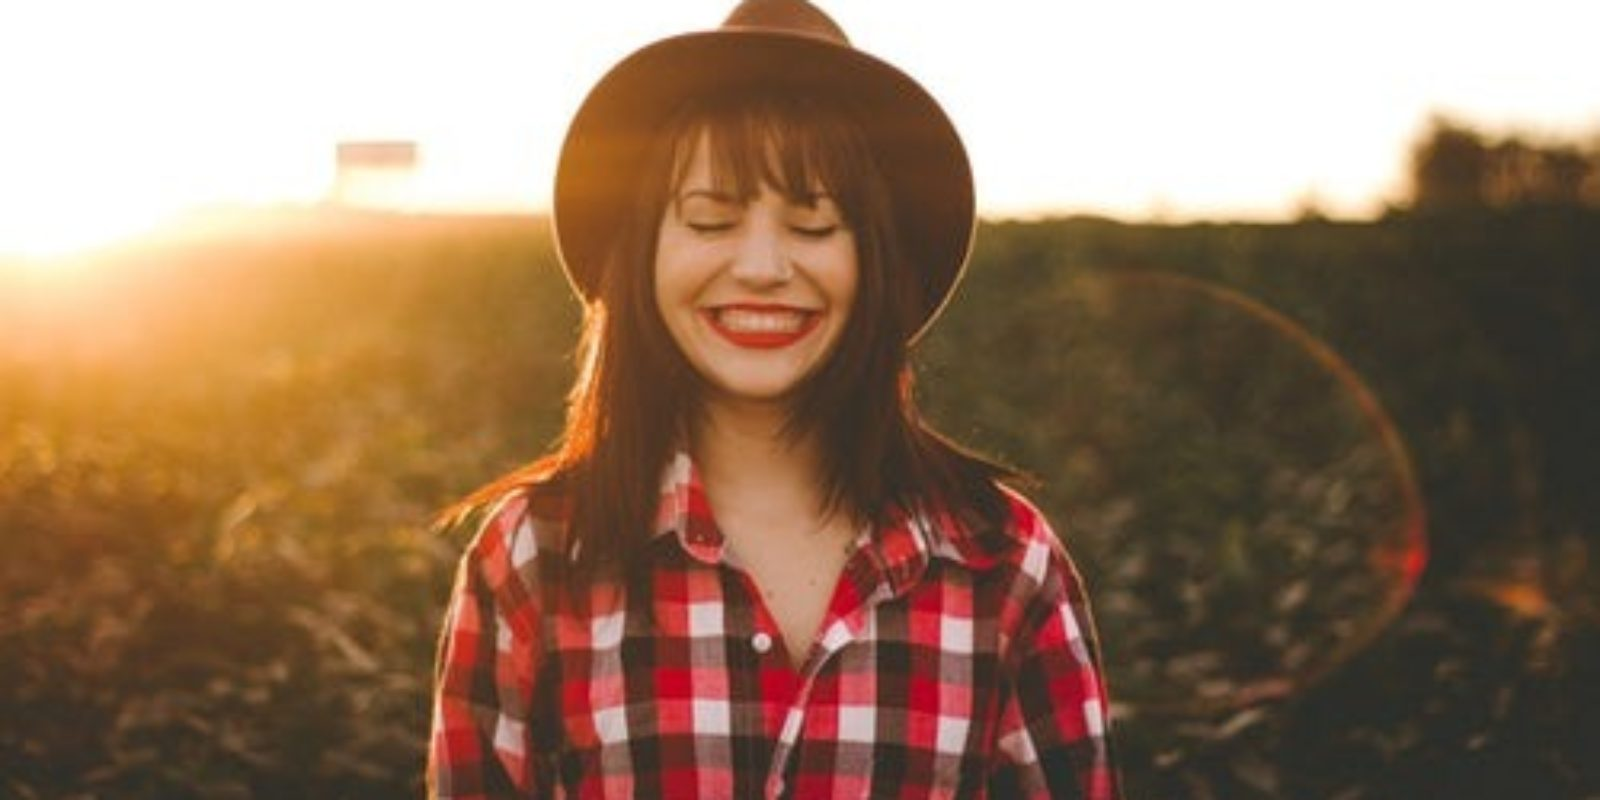 young-woman-wearing-brimmed-sunhat-and-red-checkered-shirt-smiling-in-field-during-golden-hour